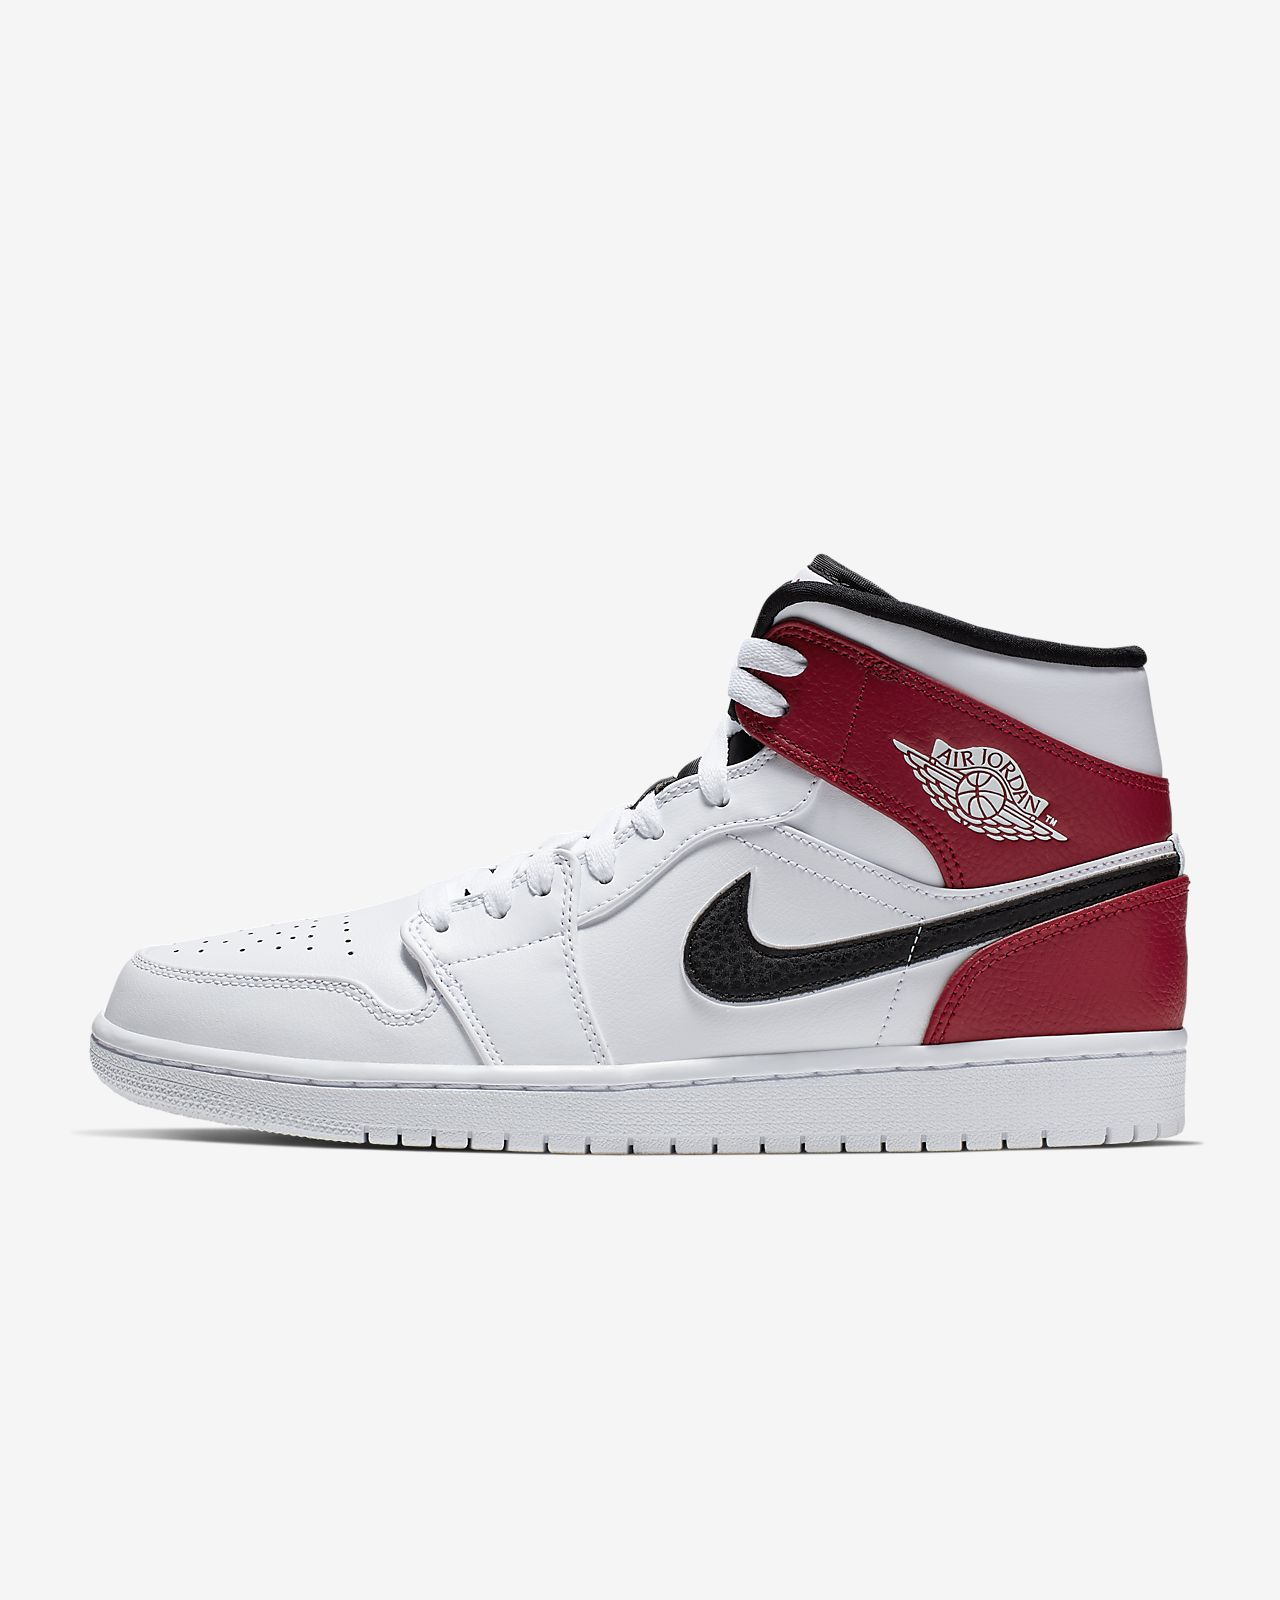 88656323fdc489 Air Jordan 1 Mid Men s Shoe. Nike.com GB